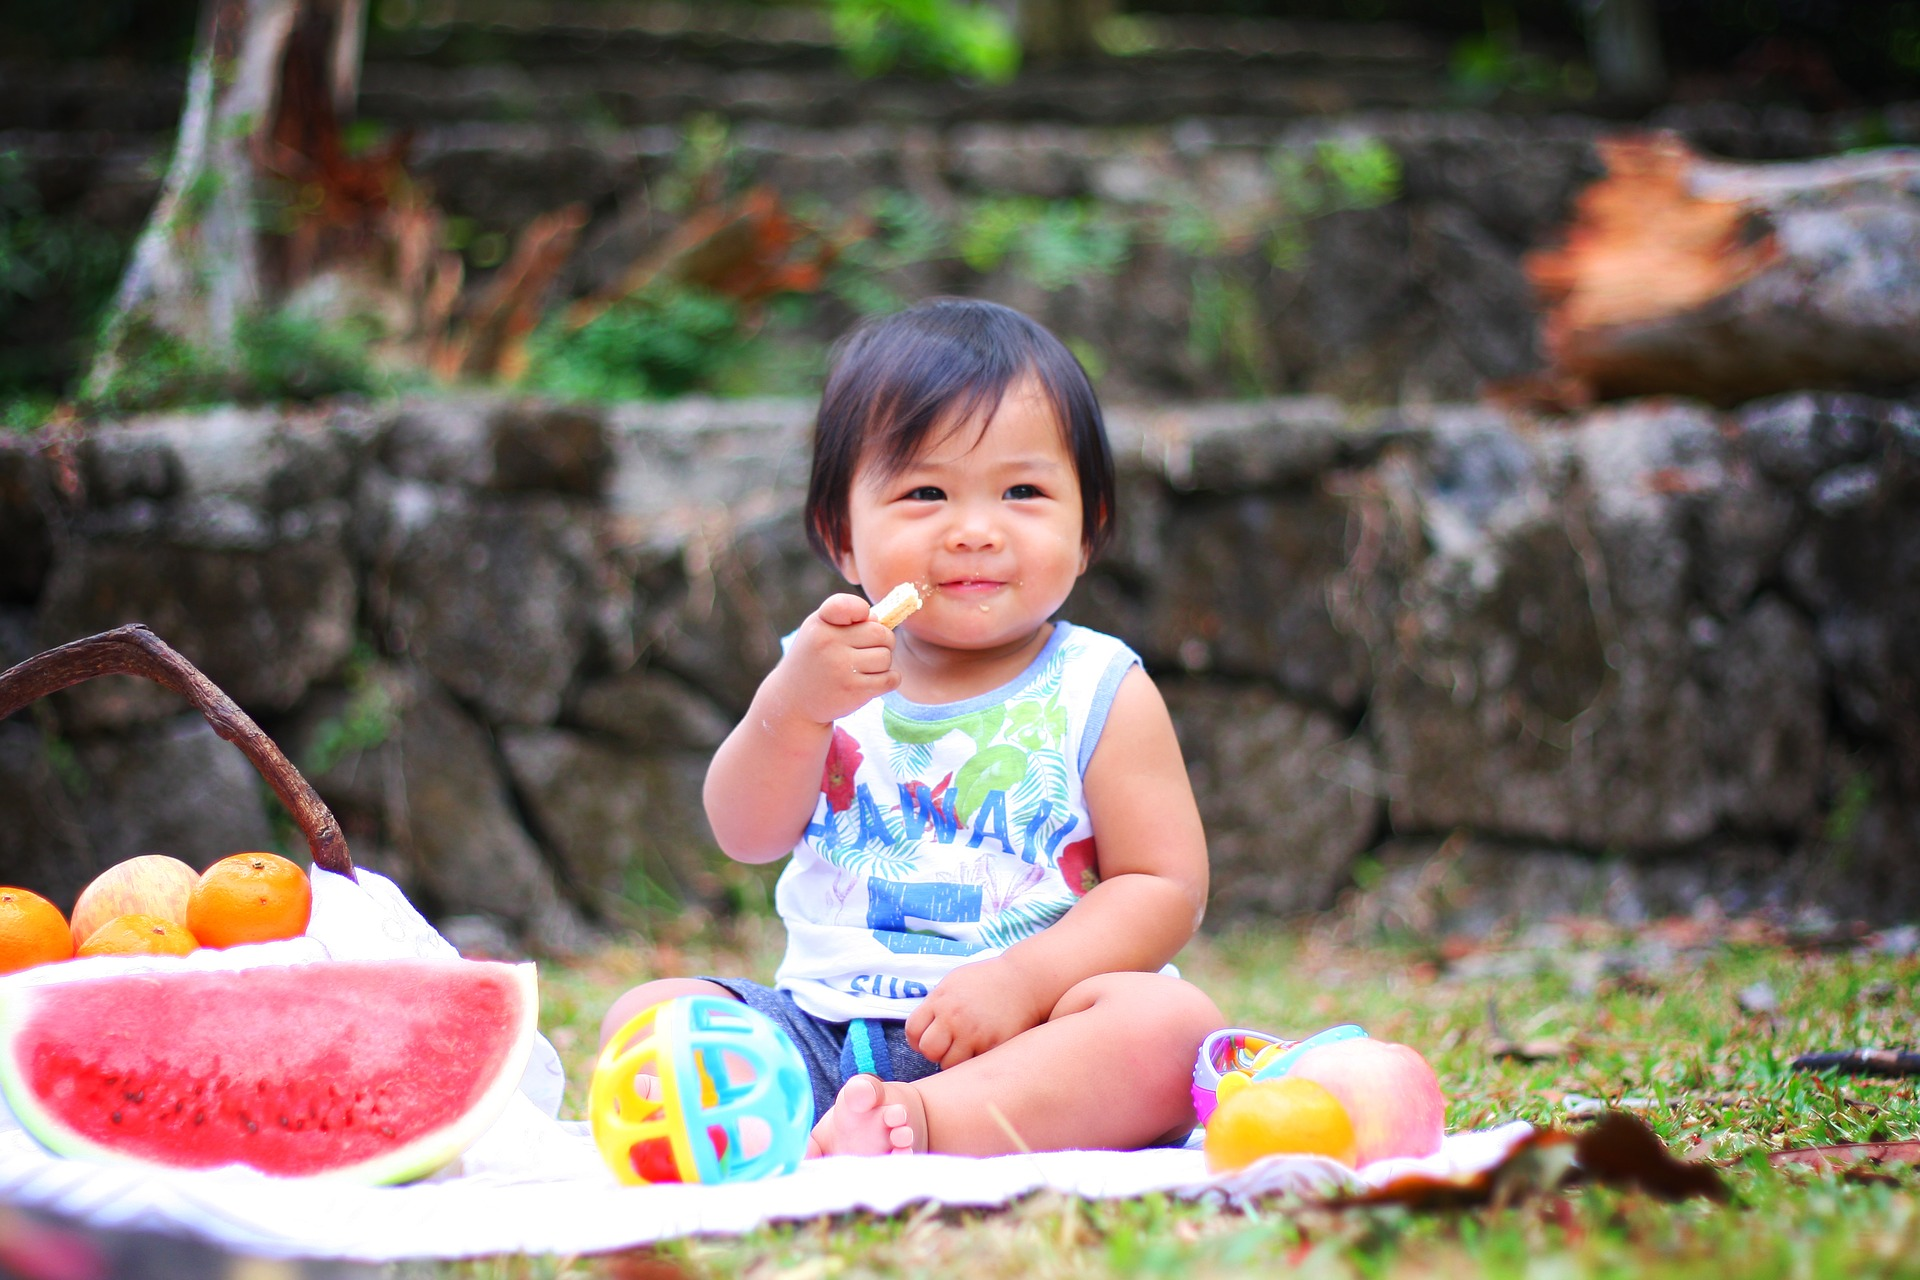 Small child snacking on fruit at a picnic